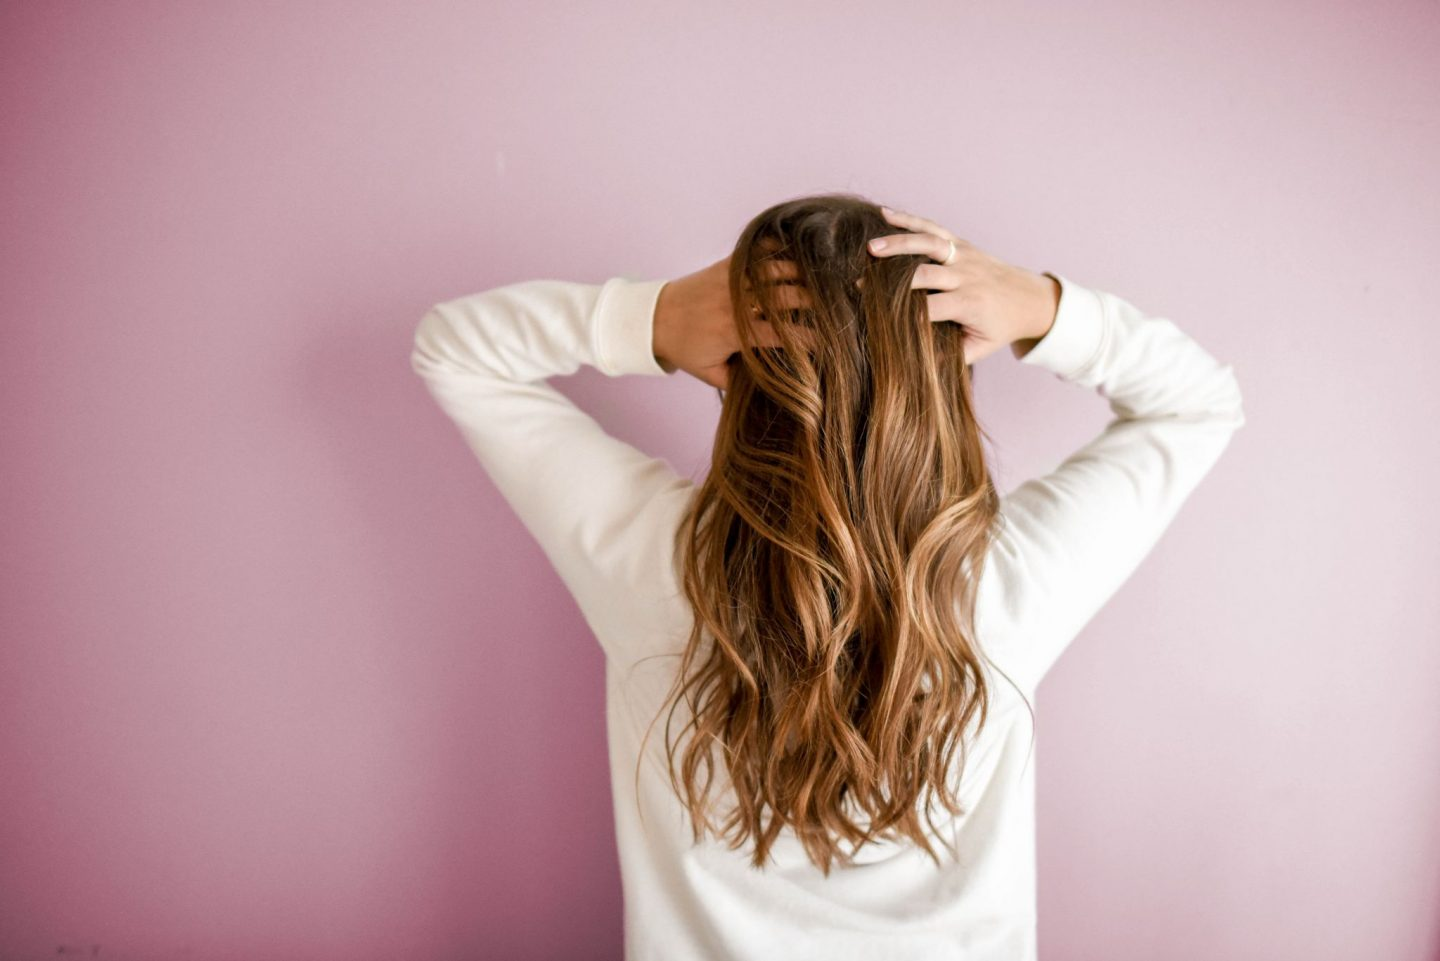 TIPS FOR DEALING WITH HAIR LOSS